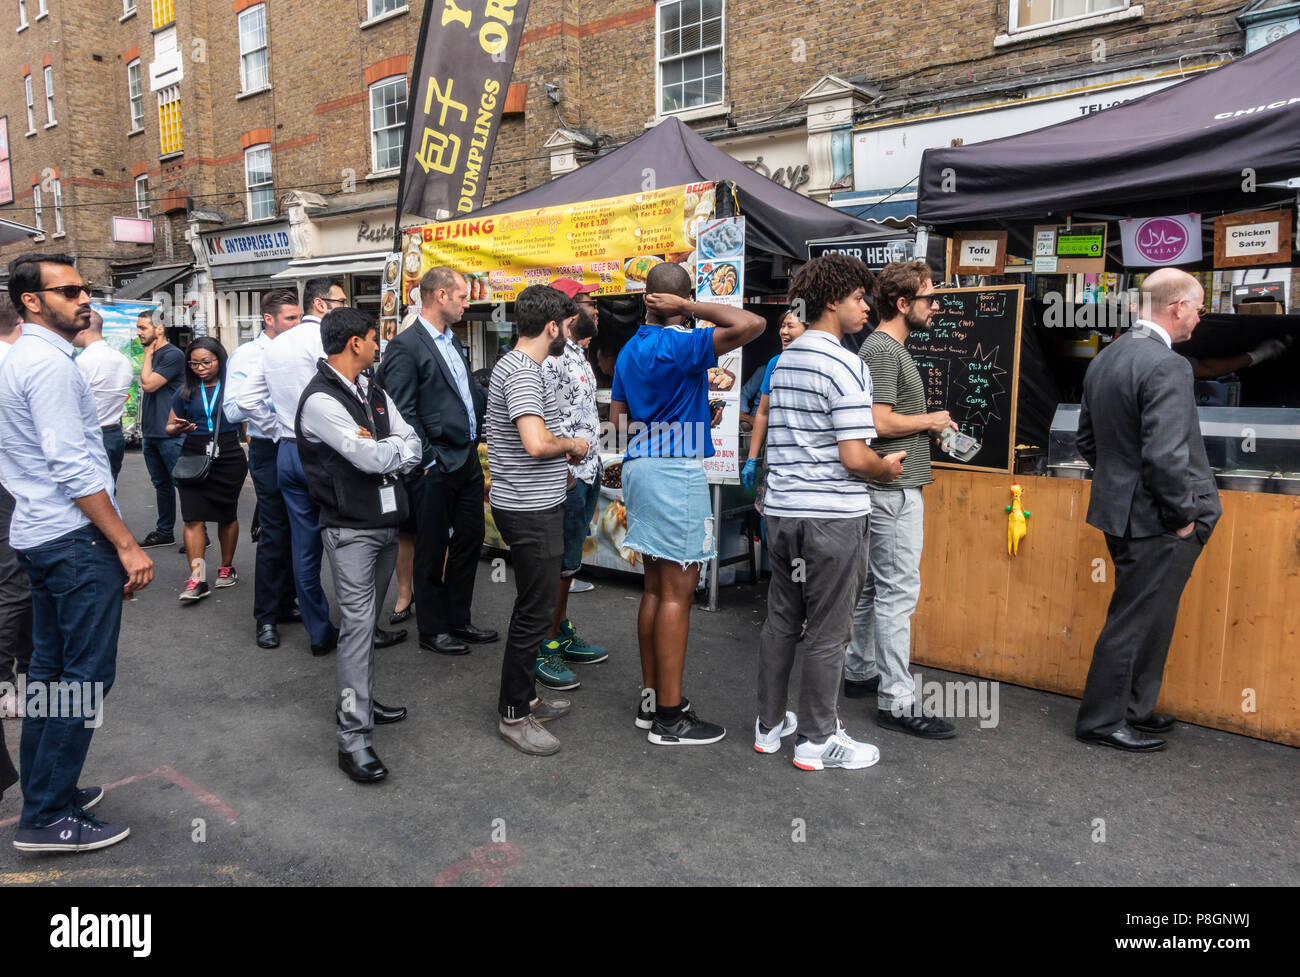 Local residents and workers queueing at two street food stalls in Petticoat Lane Market, Tower Hamlets, London, England, UK Stock Photo